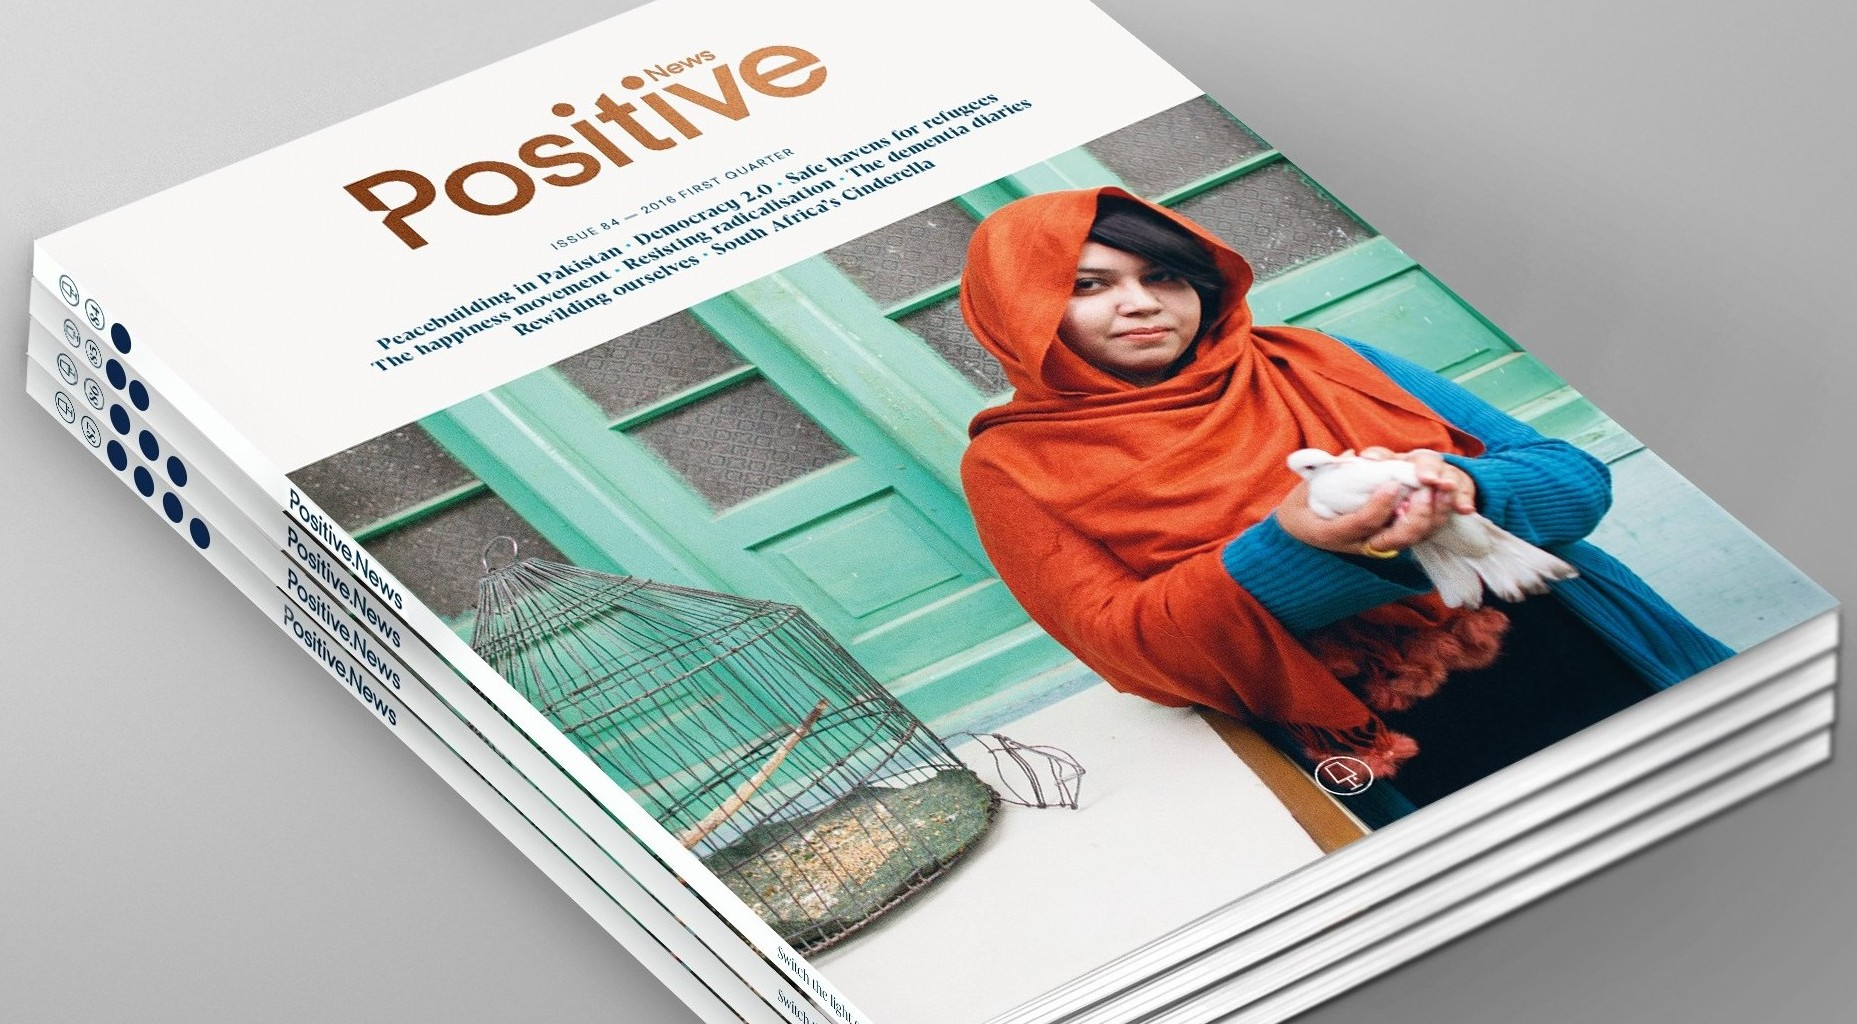 Positive News relaunches in print - Positive News